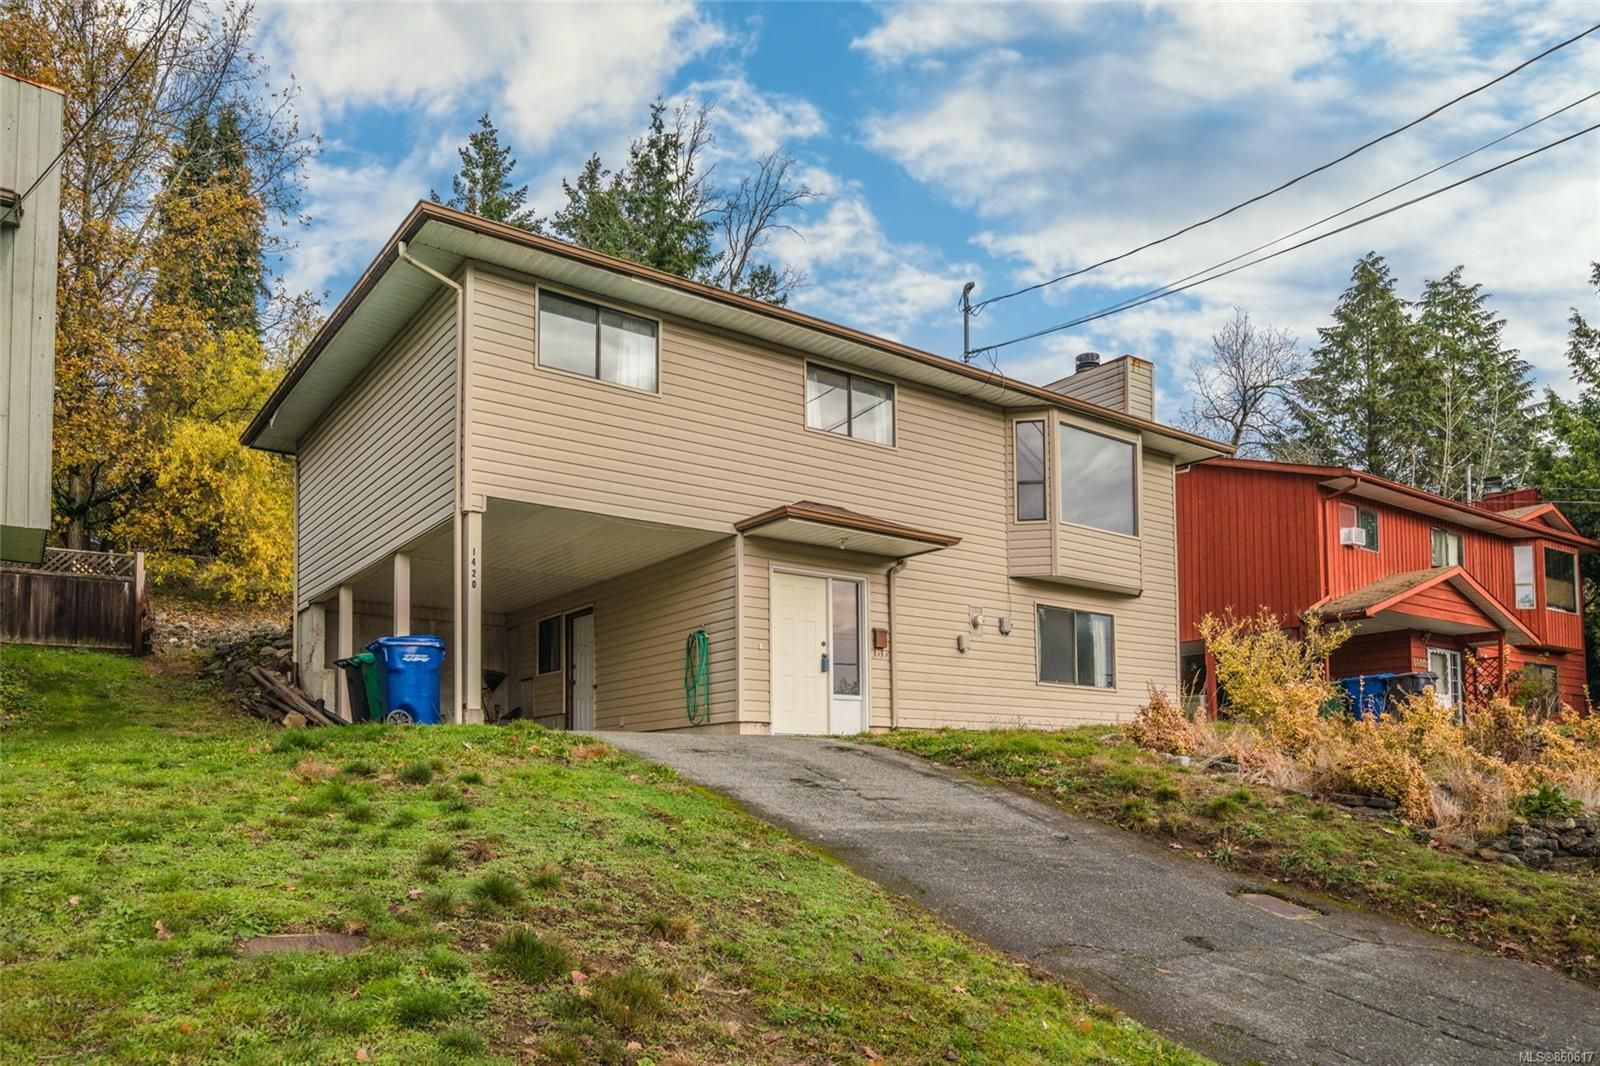 Main Photo: 1420 Bush St in : Na Central Nanaimo House for sale (Nanaimo)  : MLS®# 860617